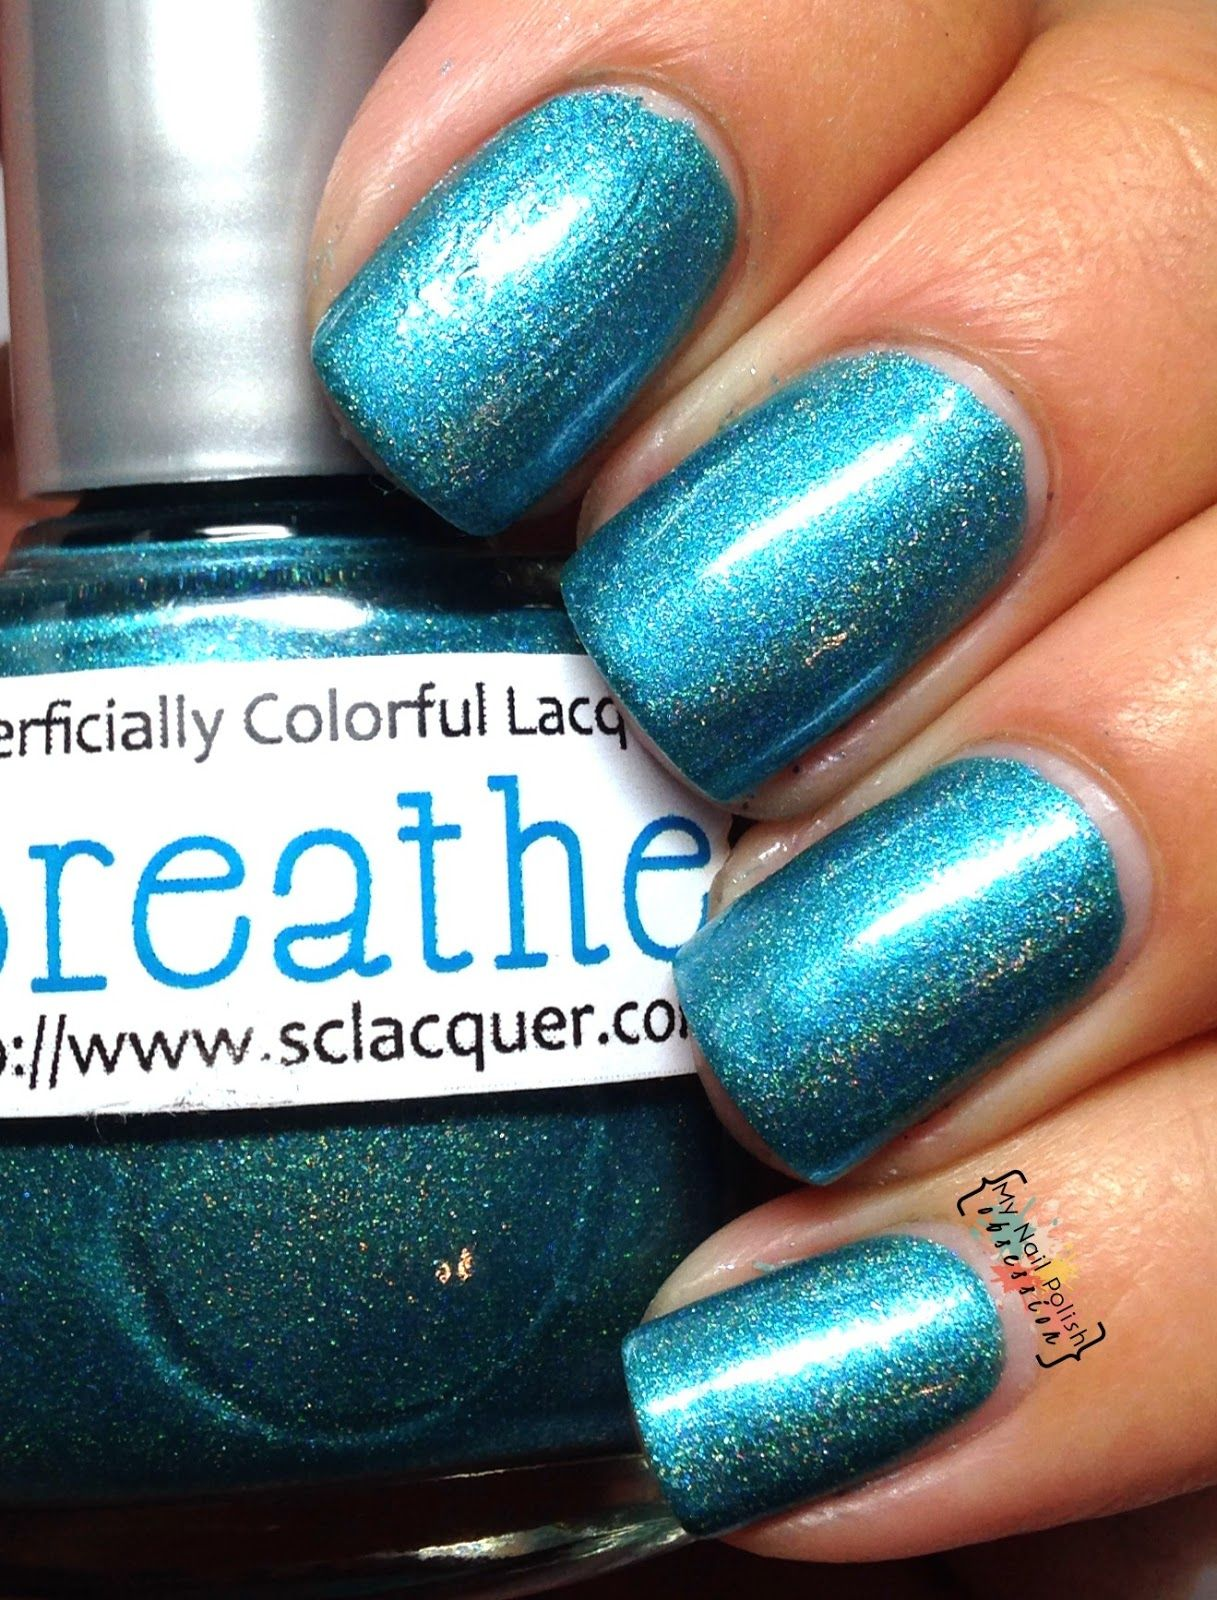 Superficially Colorful Lacquer Breathe